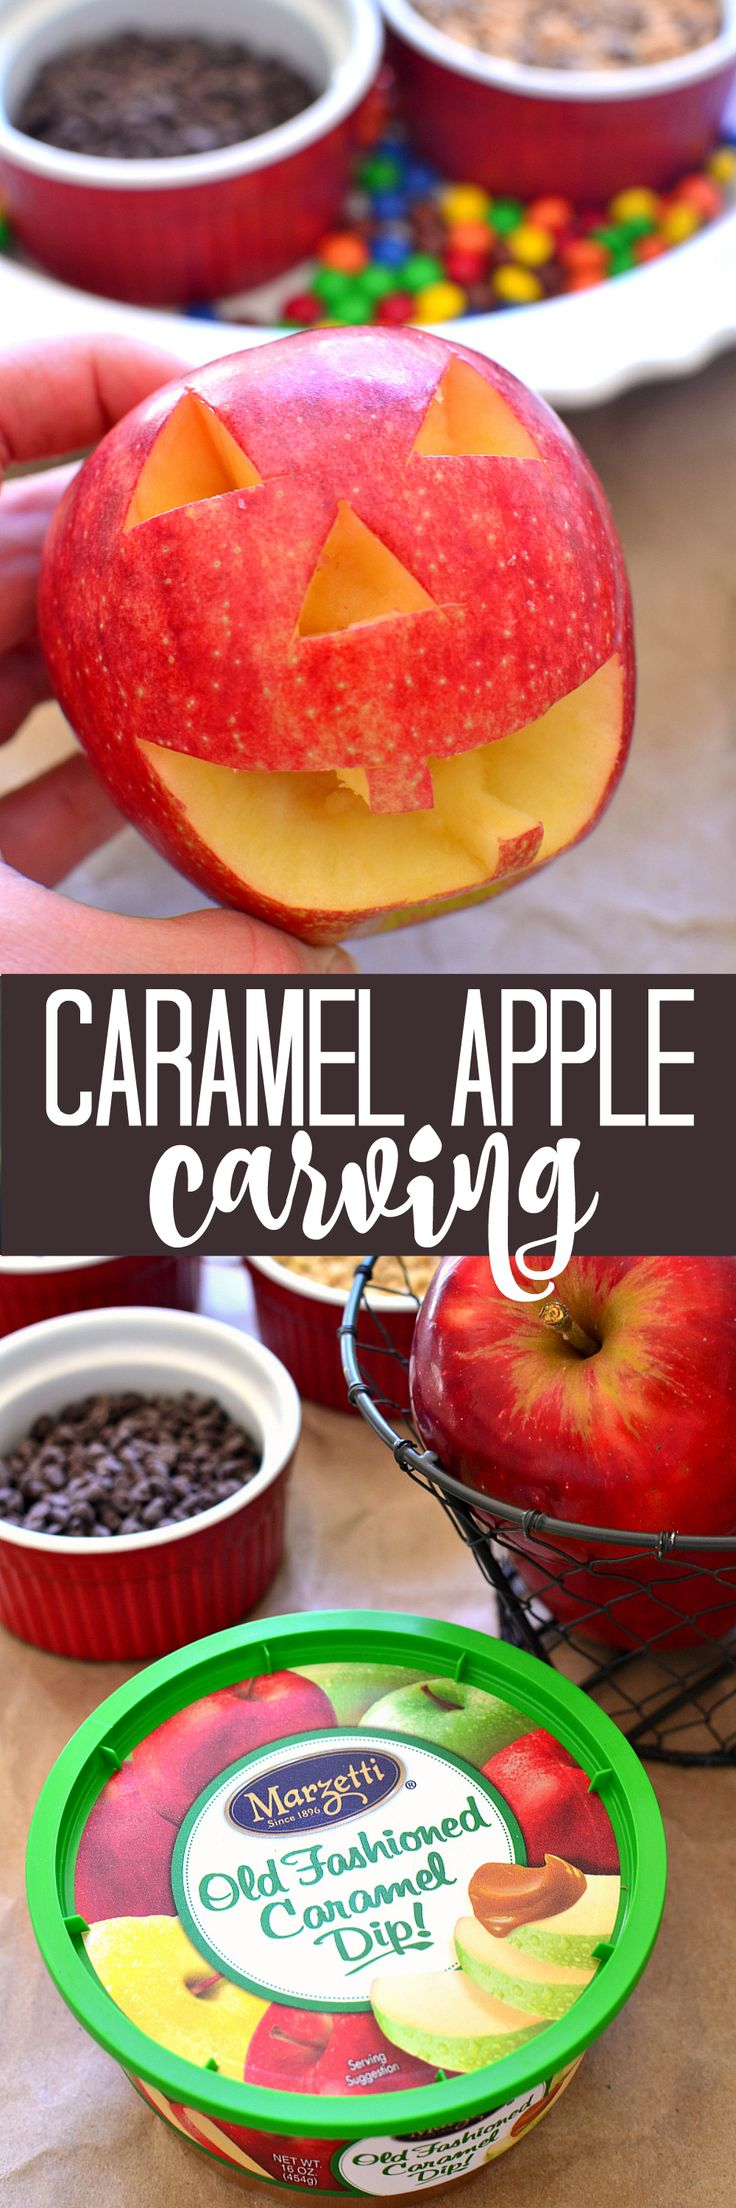 Caramel apple carving a fun new fall tradition thatus easy for